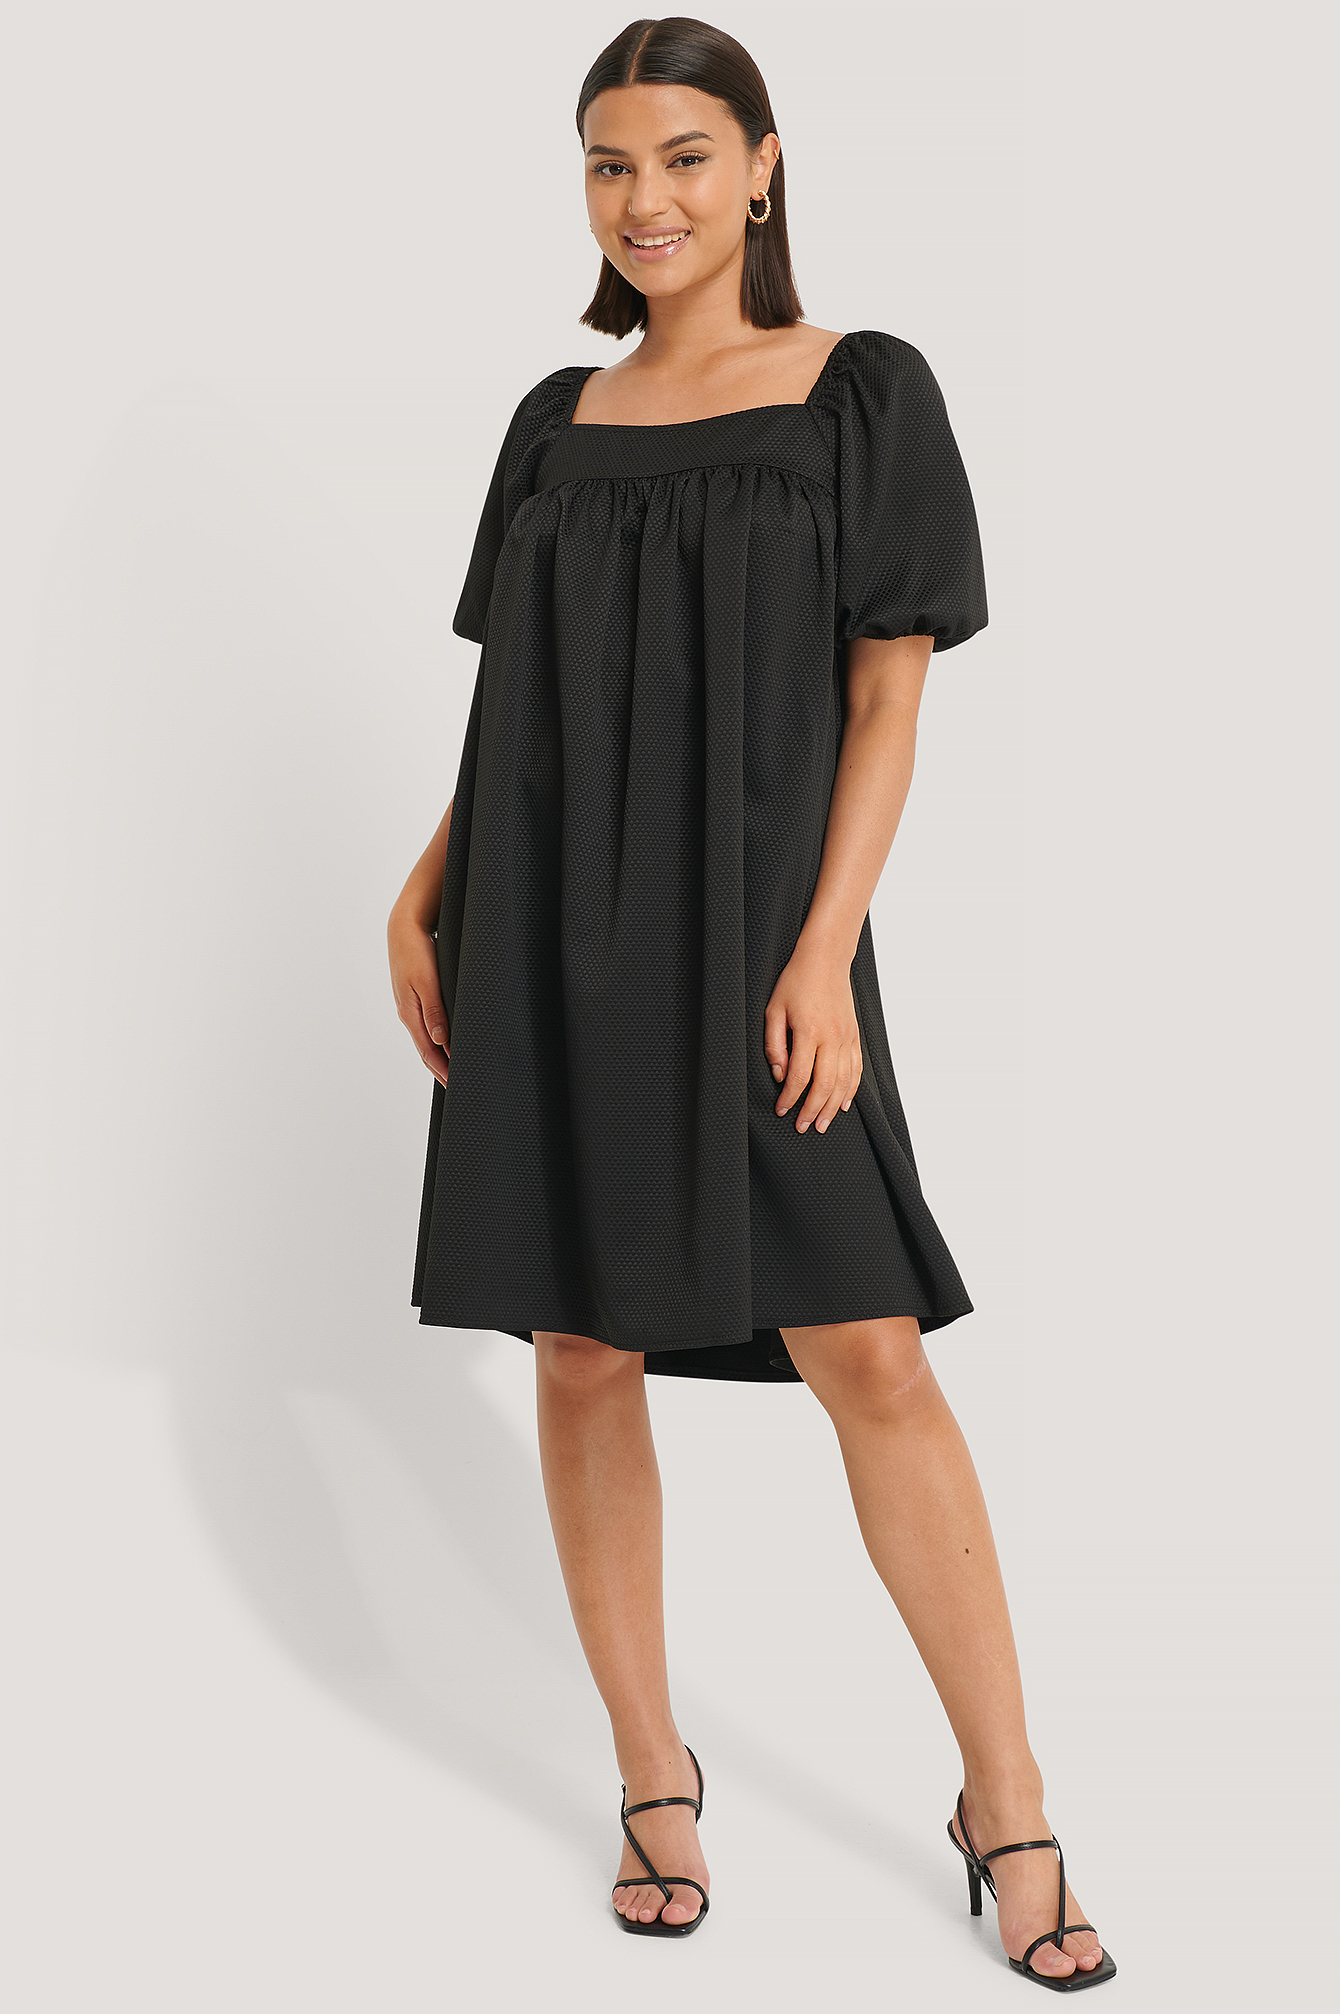 Black Structured Square Neck Dress